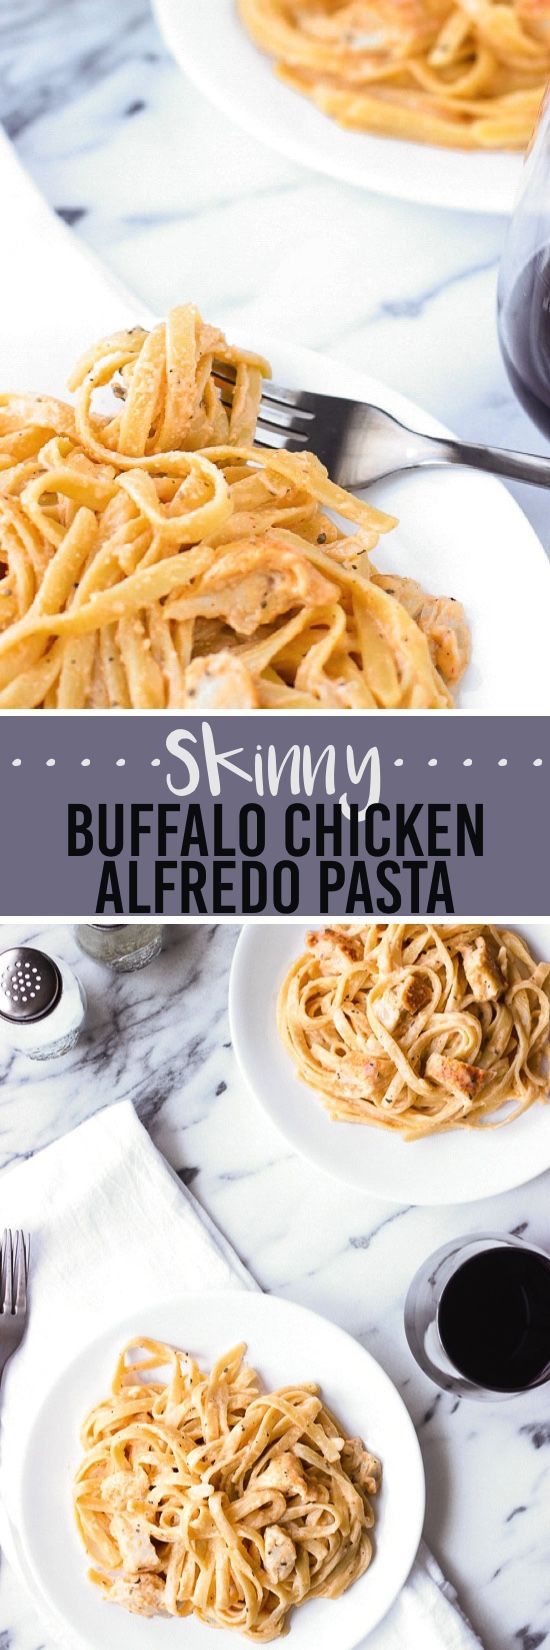 This skinny buffalo chicken alfredo pasta is seriously lightened up but creamy with a ton of flavor. No butter or cream in this slightly spicy and healthier pasta dish.